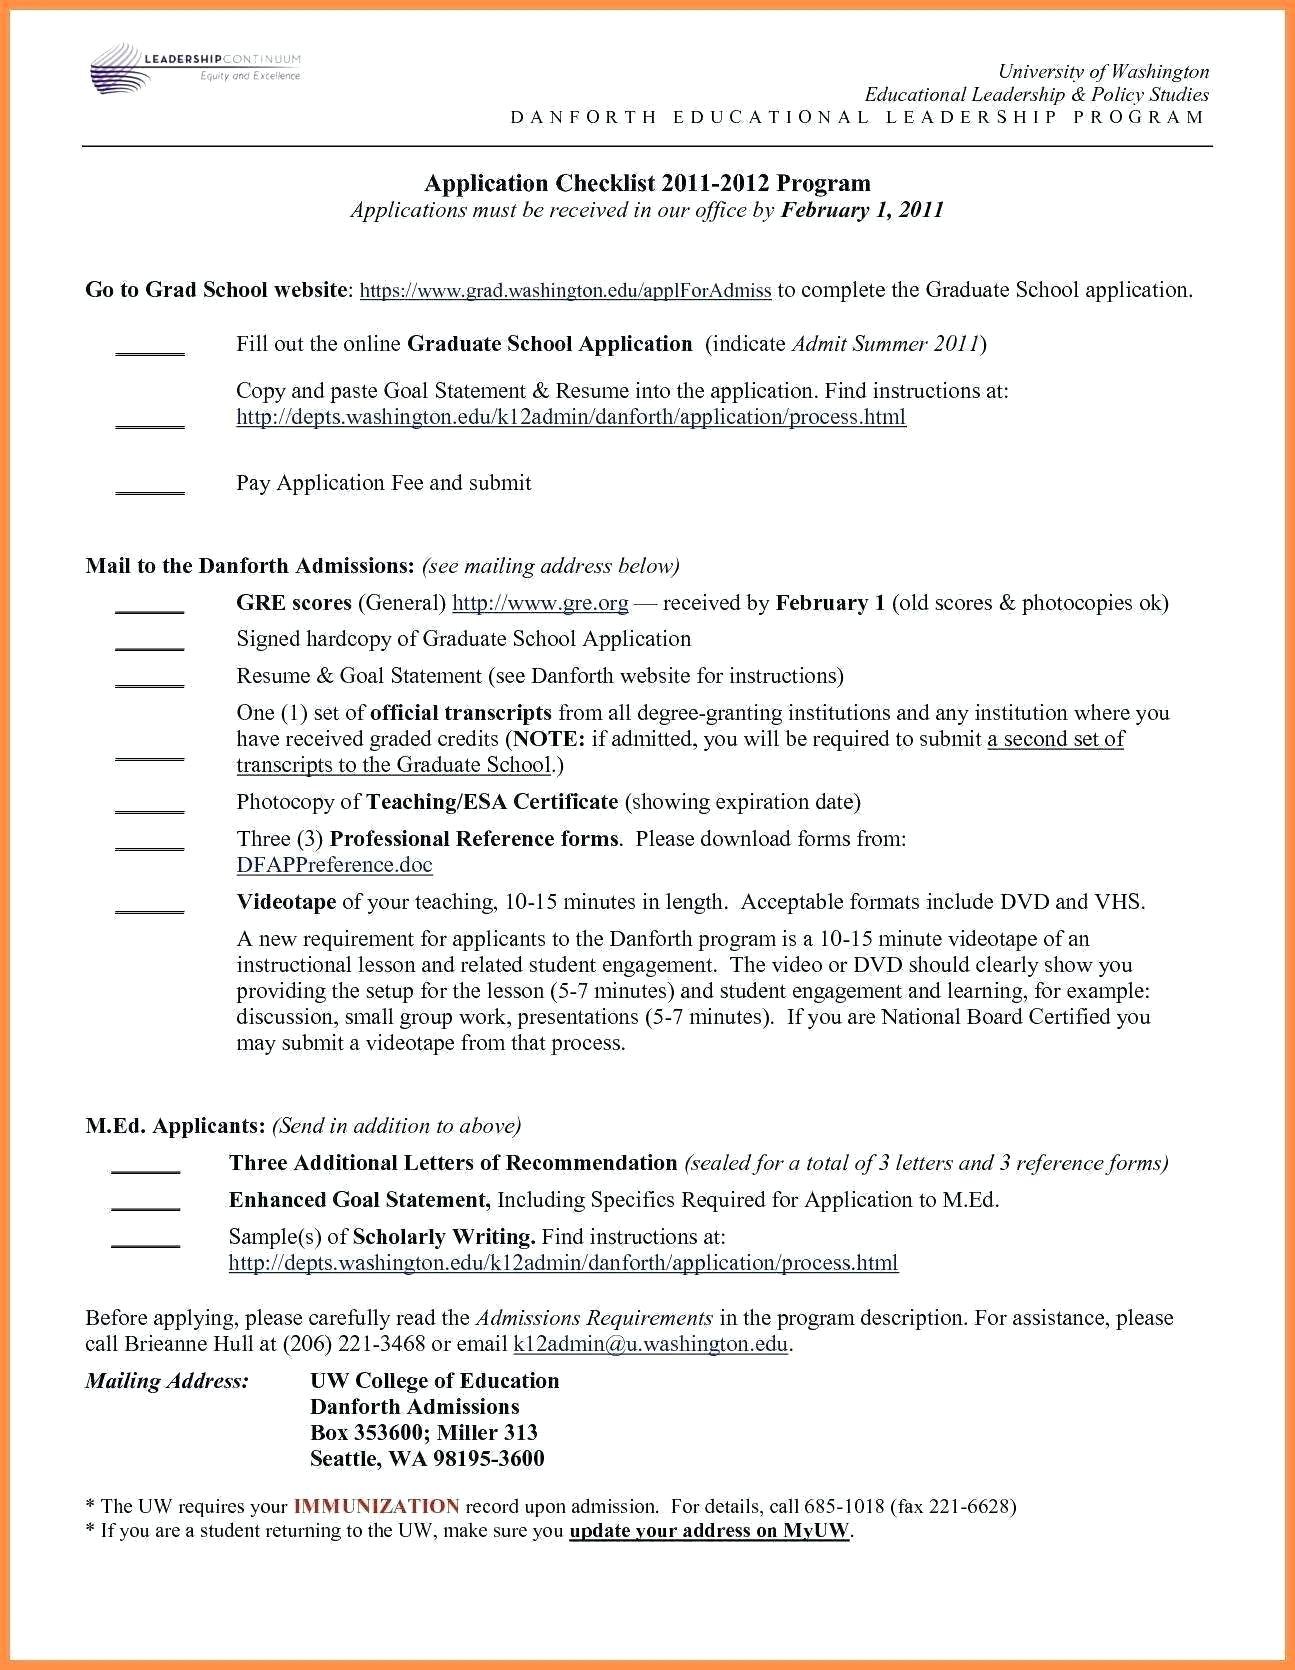 Resume For Graduate School References Resume Example Elegant Inspirational Examples Resumes Ecologist How To Put Graduate School Application resume for graduate school|wikiresume.com